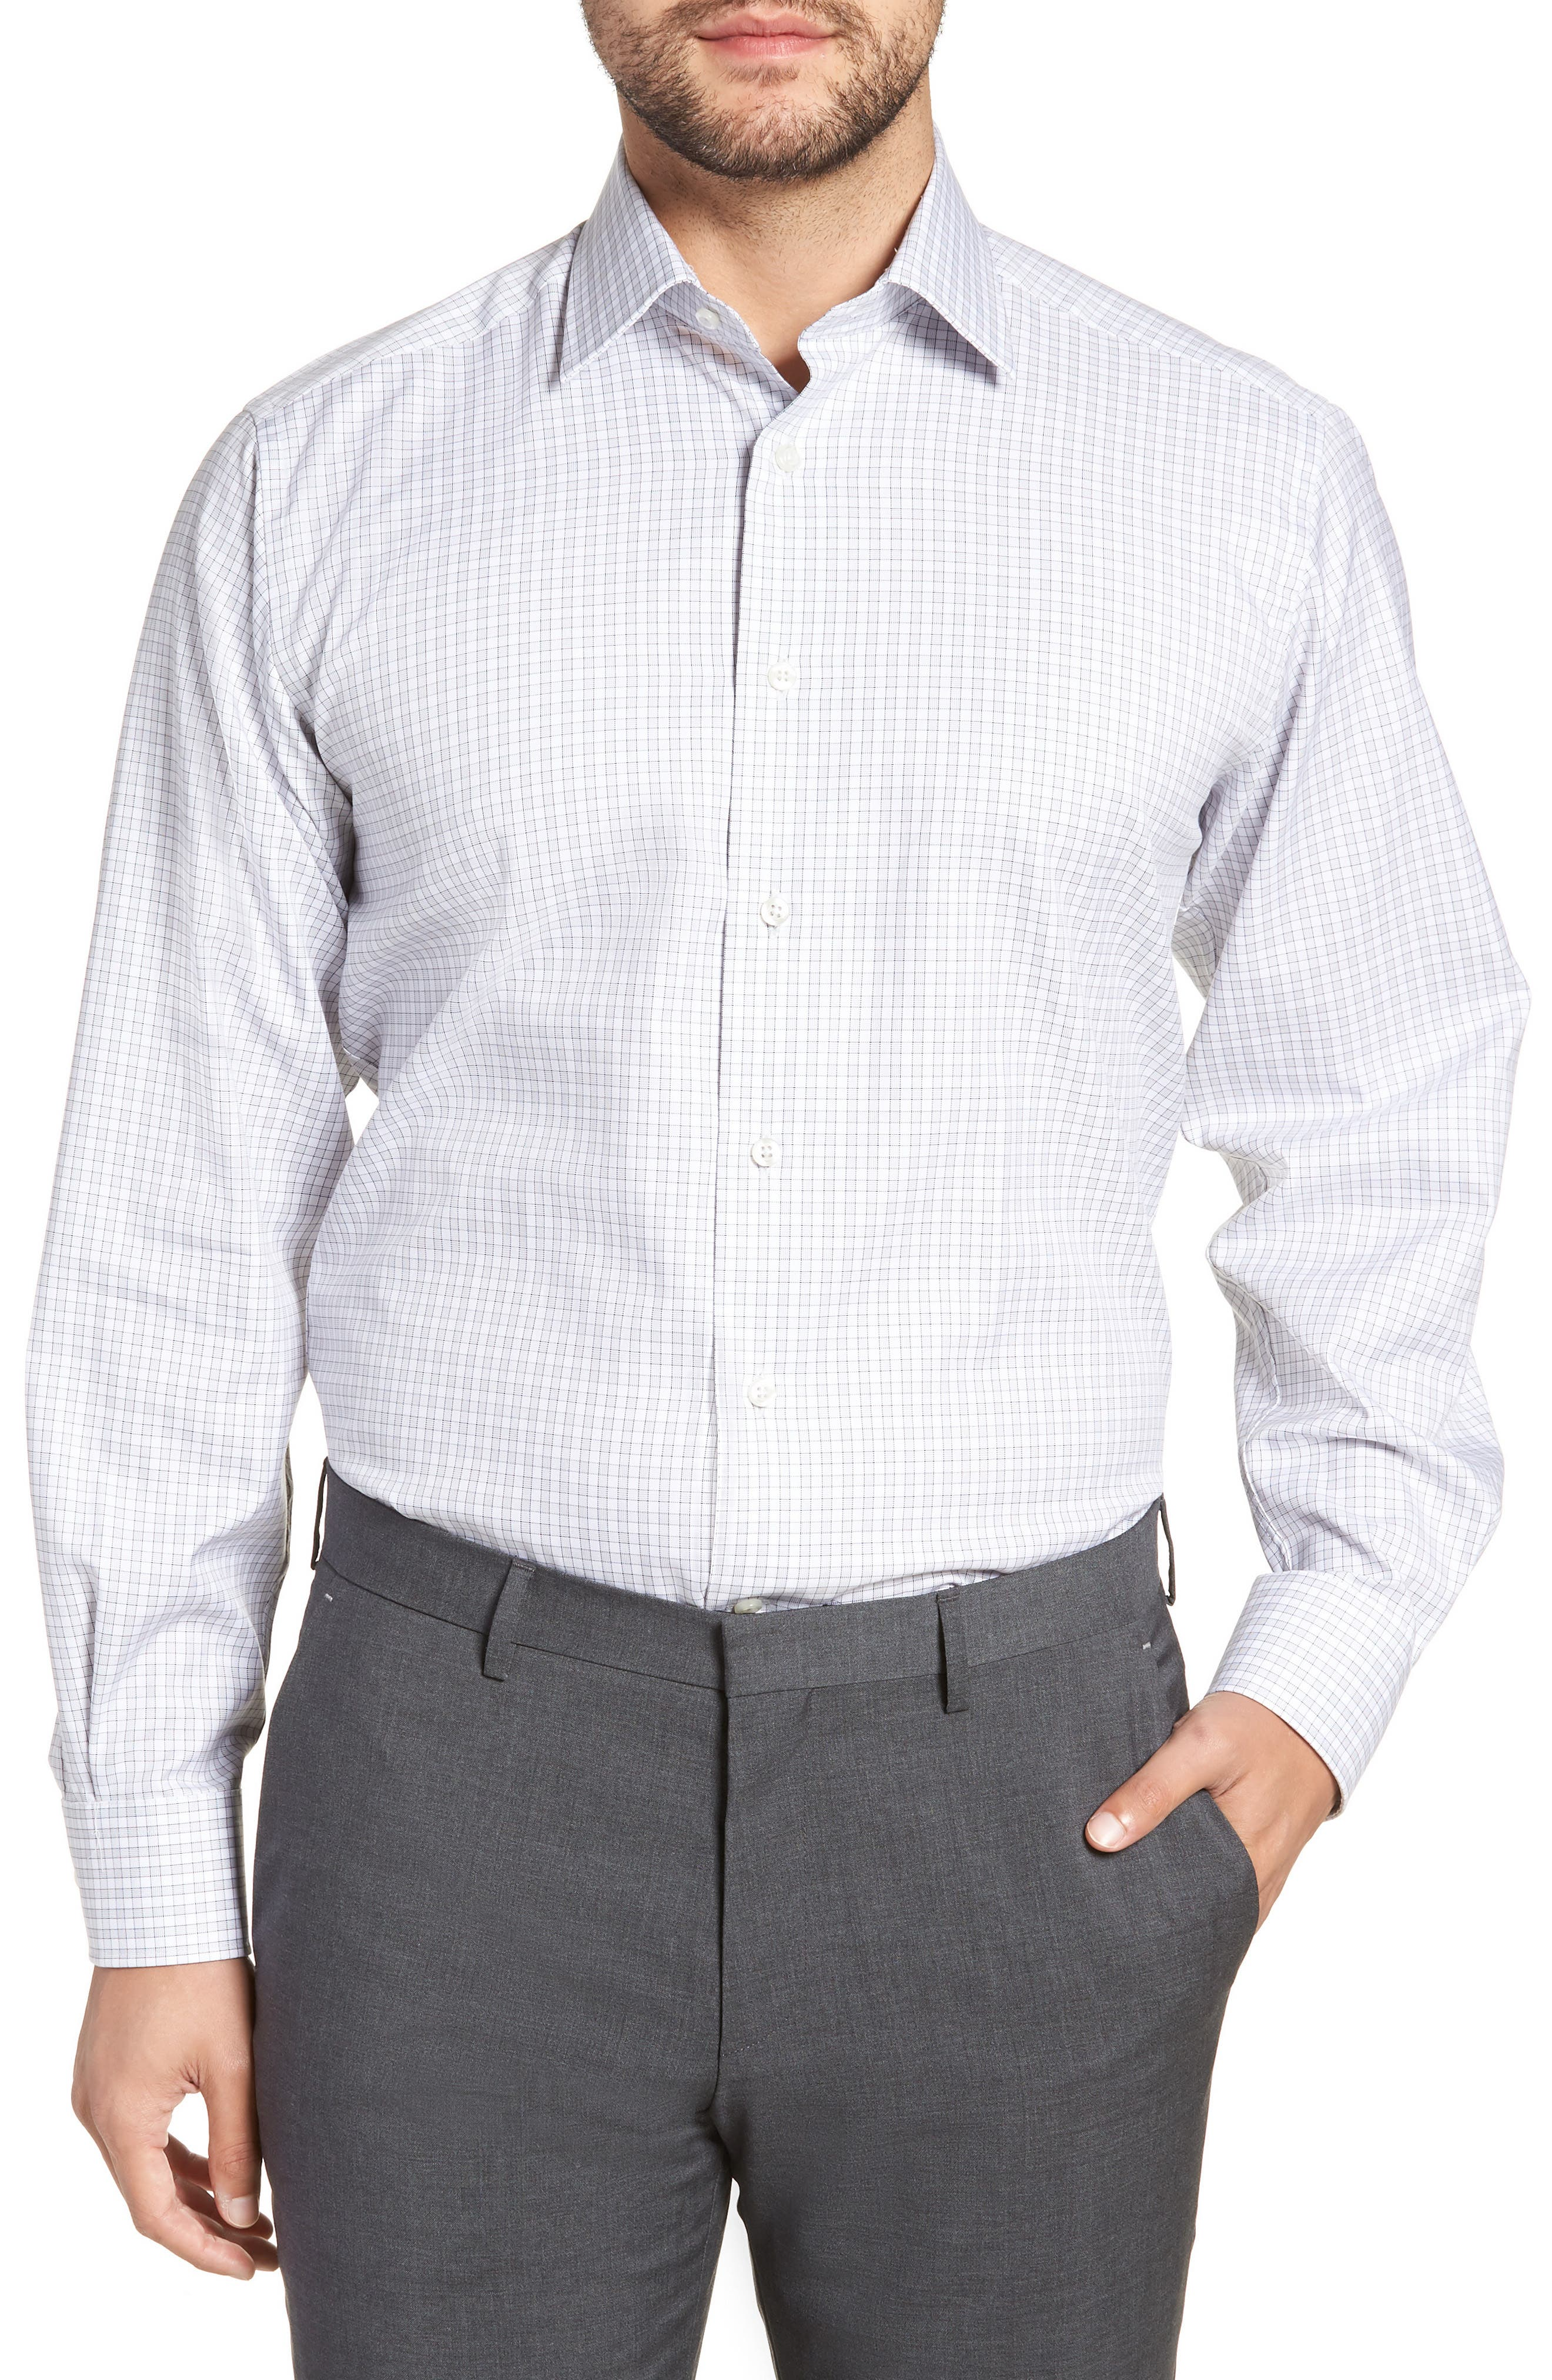 Regular Fit Check Dress Shirt,                         Main,                         color, GRAY